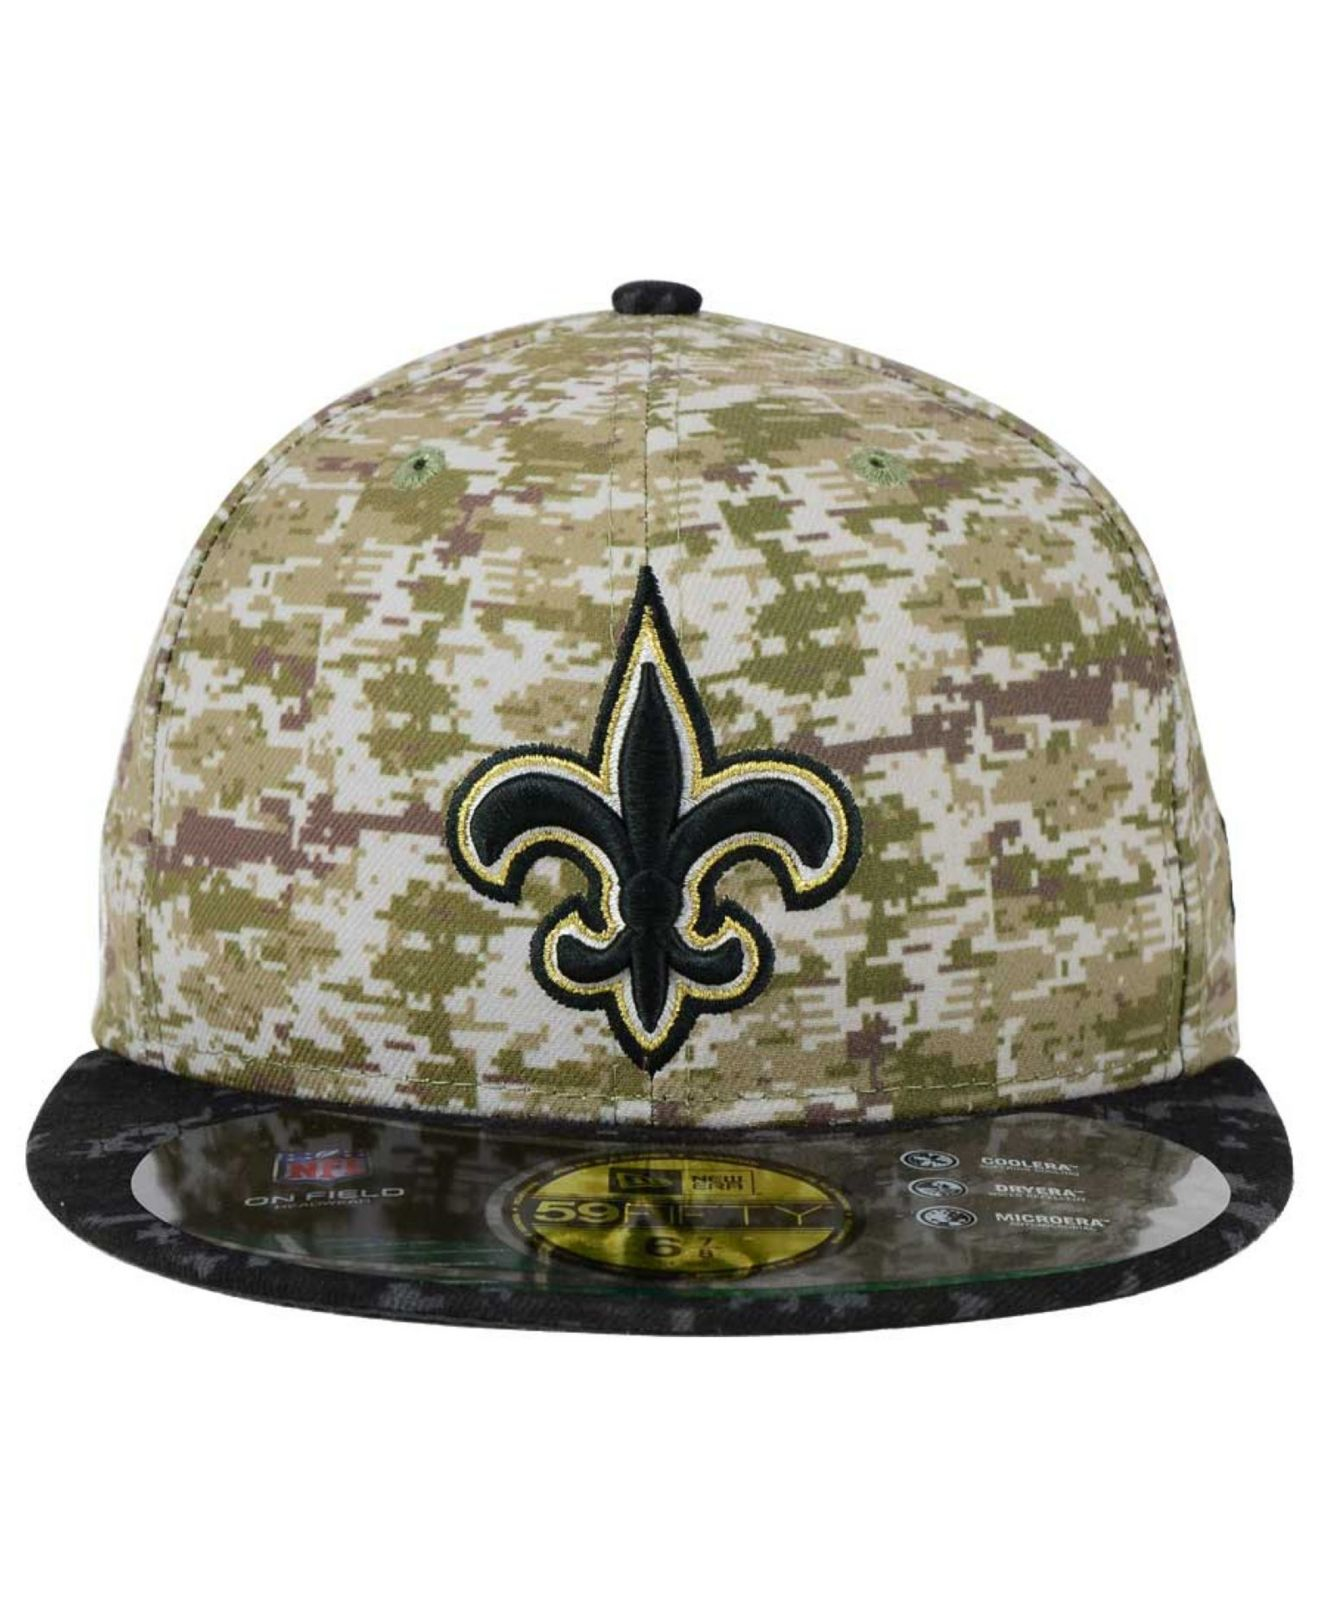 Lyst - KTZ New Orleans Saints Salute To Service 59fifty Cap in Green ... 43be46581